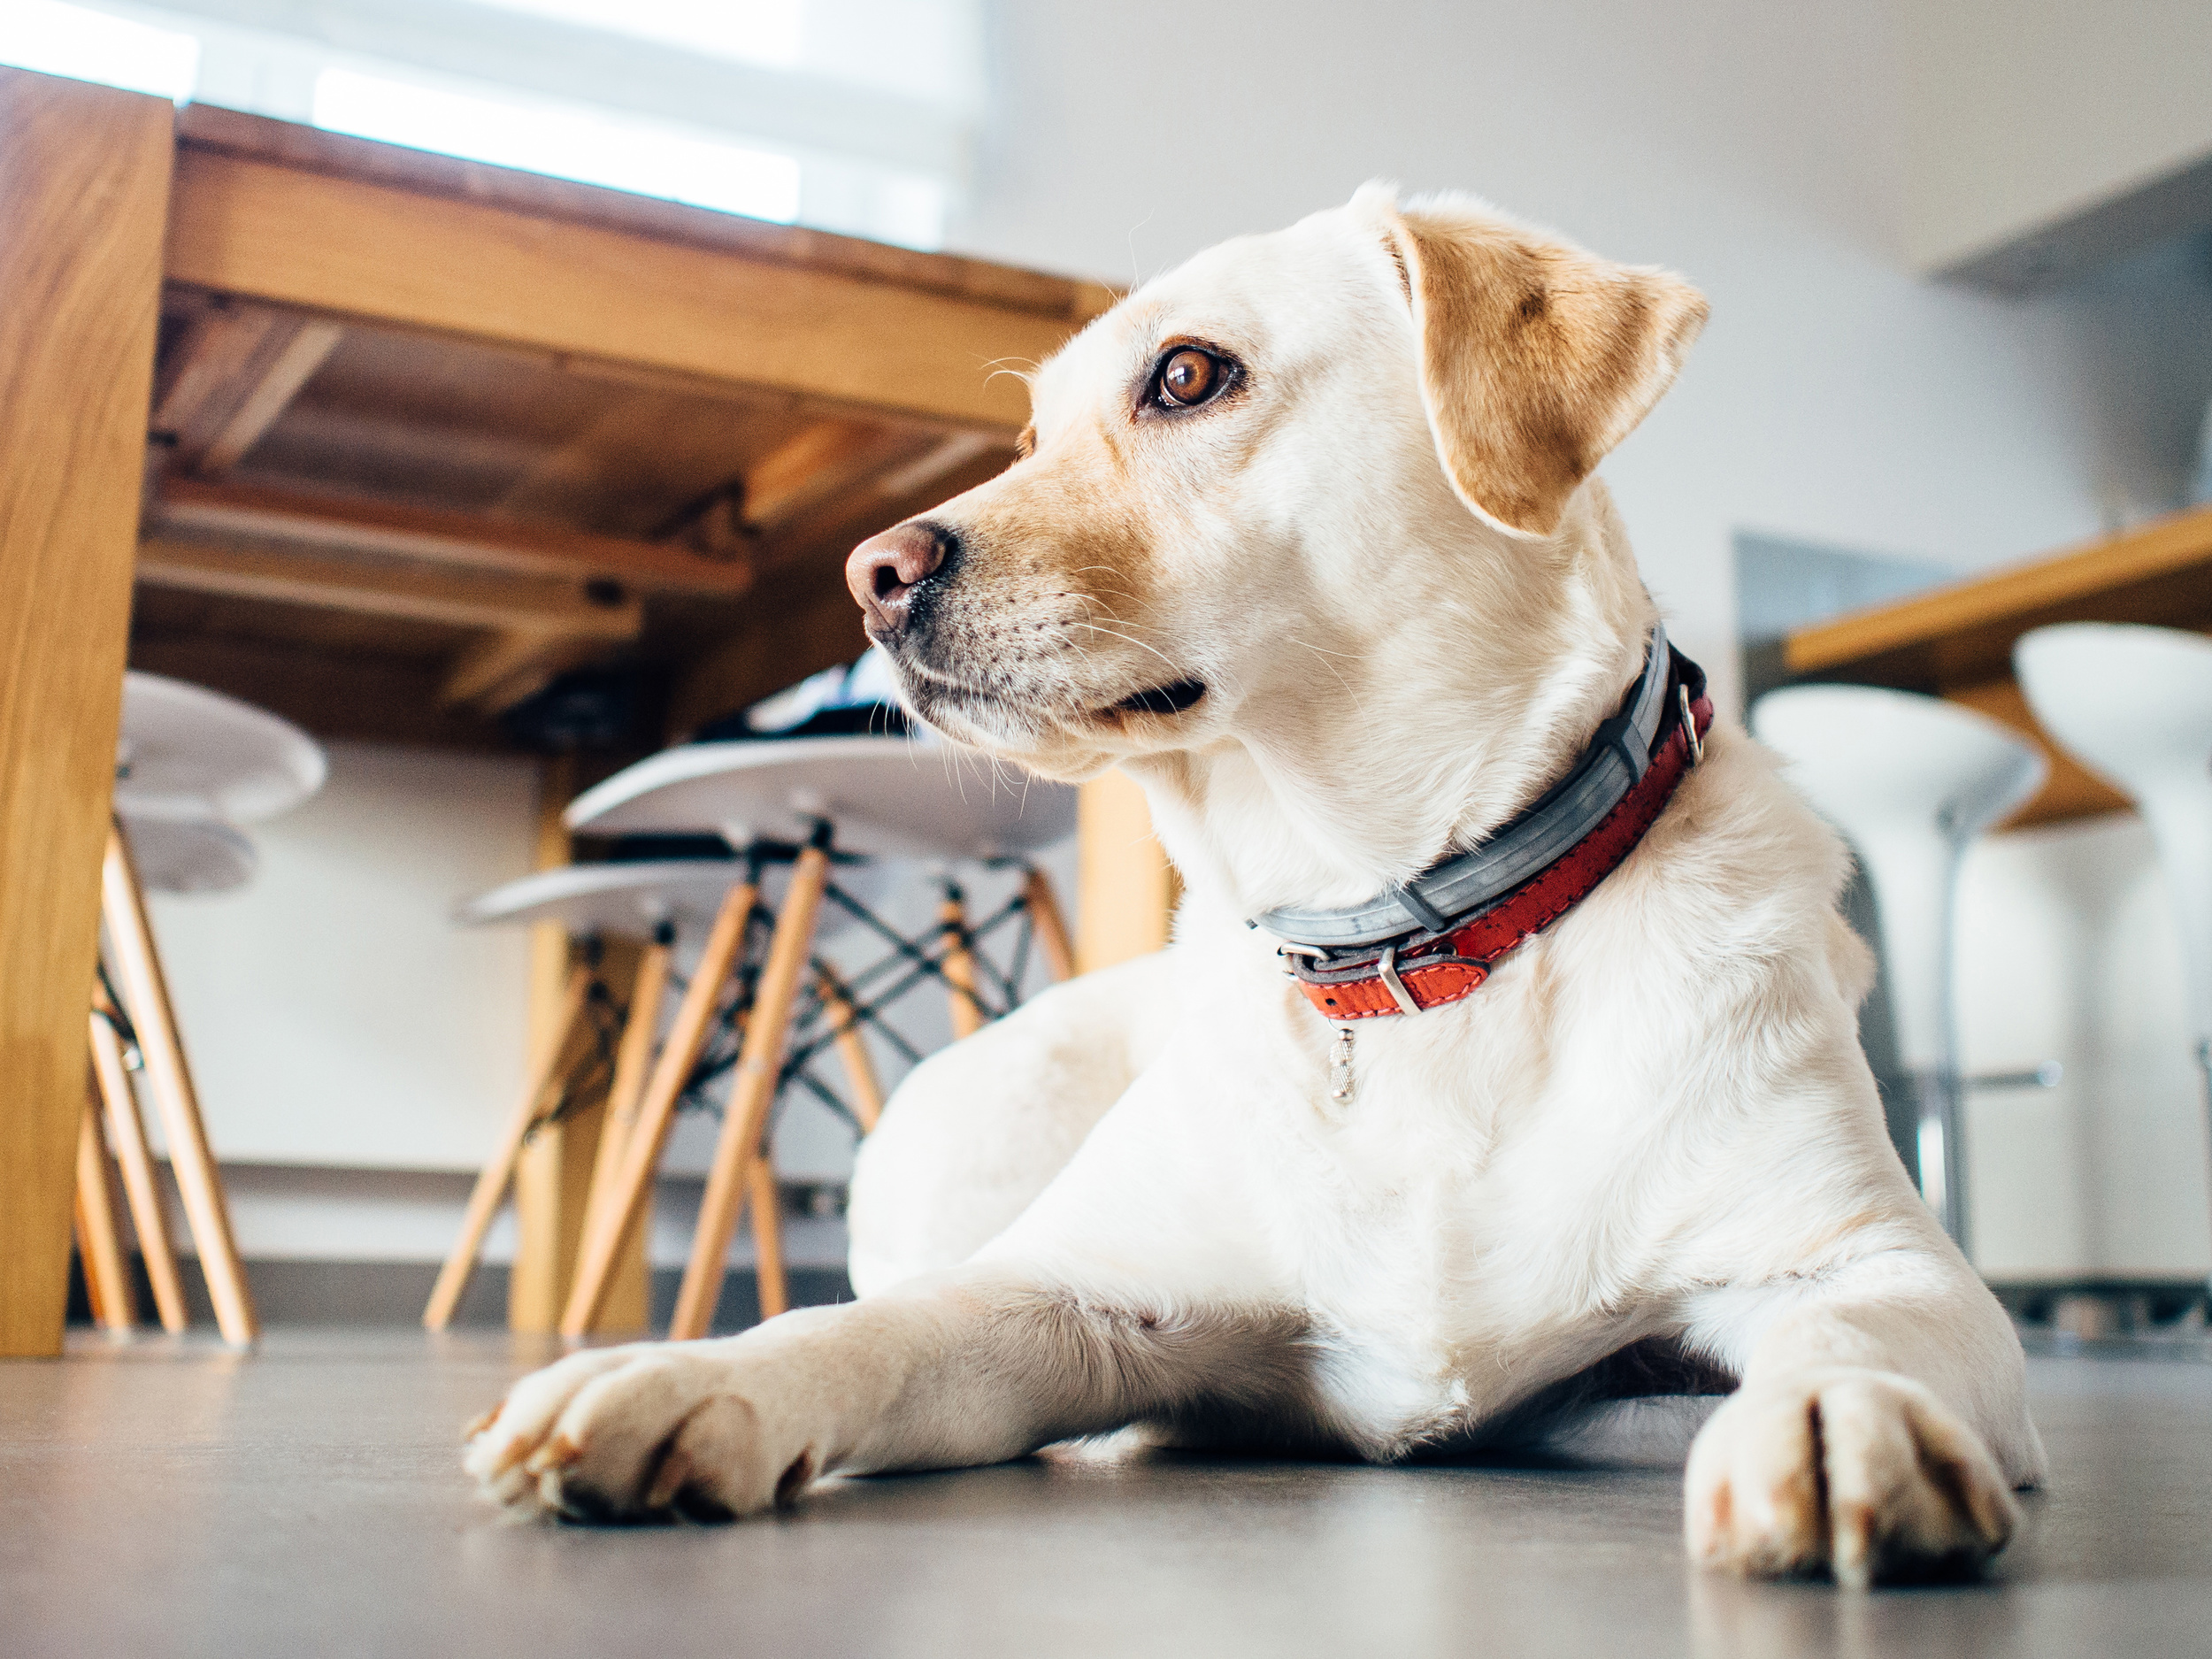 Pet Sitting costs can vary a great deal, which is why it's important to understand where those different costs come from.